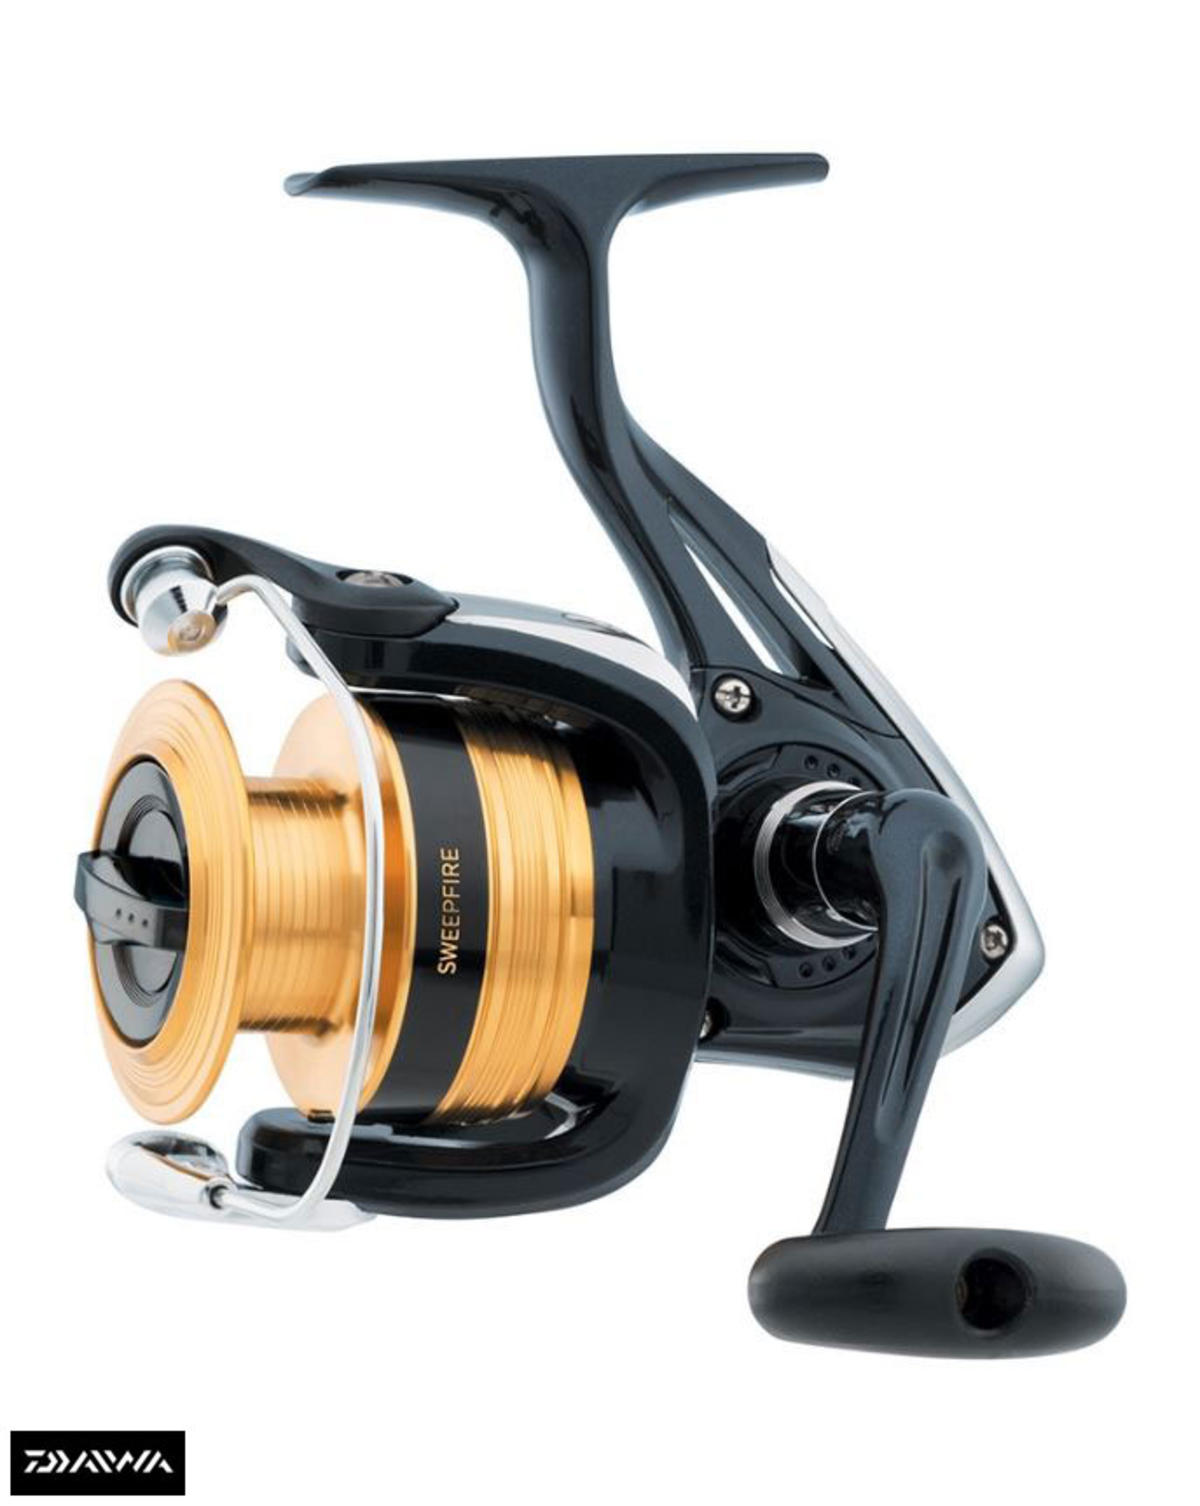 New Daiwa Sweepfire 3000-2B Fishing Spinning Reel - SWF3000-2B